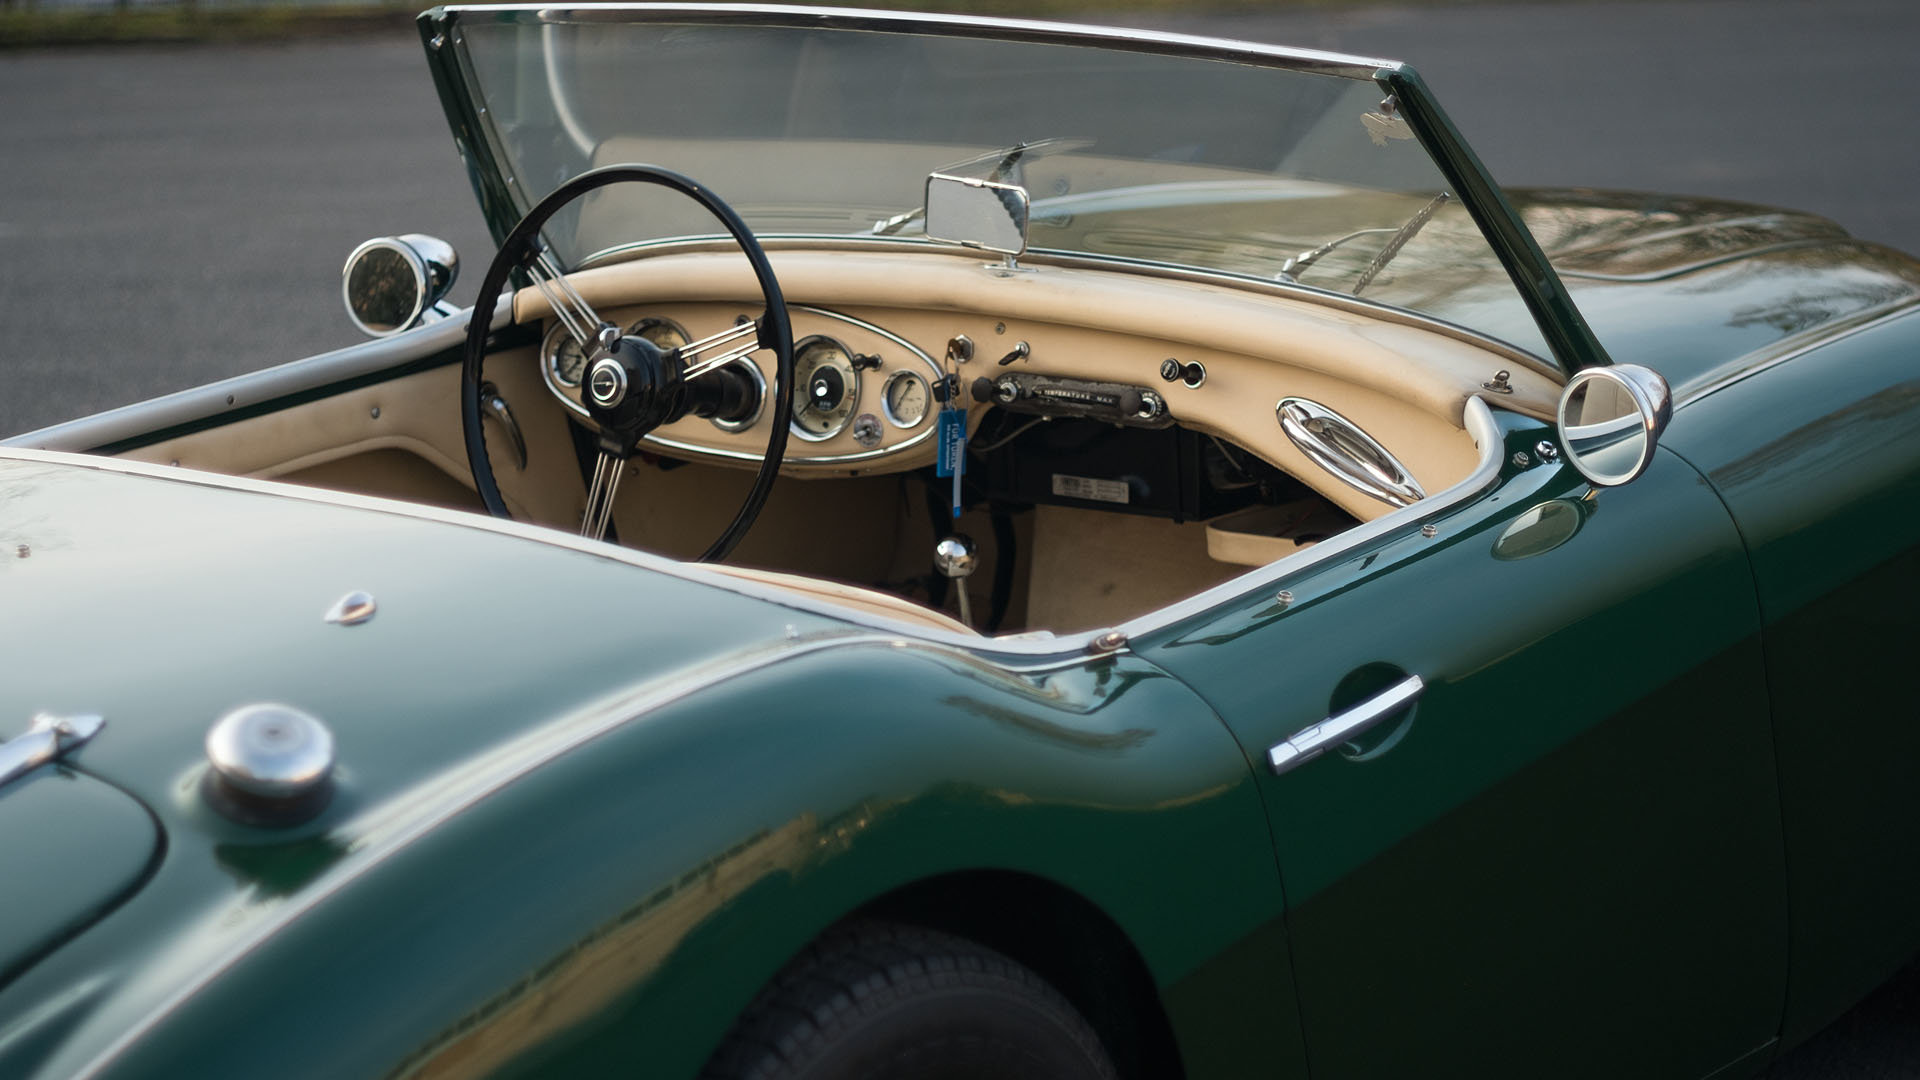 Austin Healey BN7 1959, frame-off renovation For Sale (picture 2 of 6)